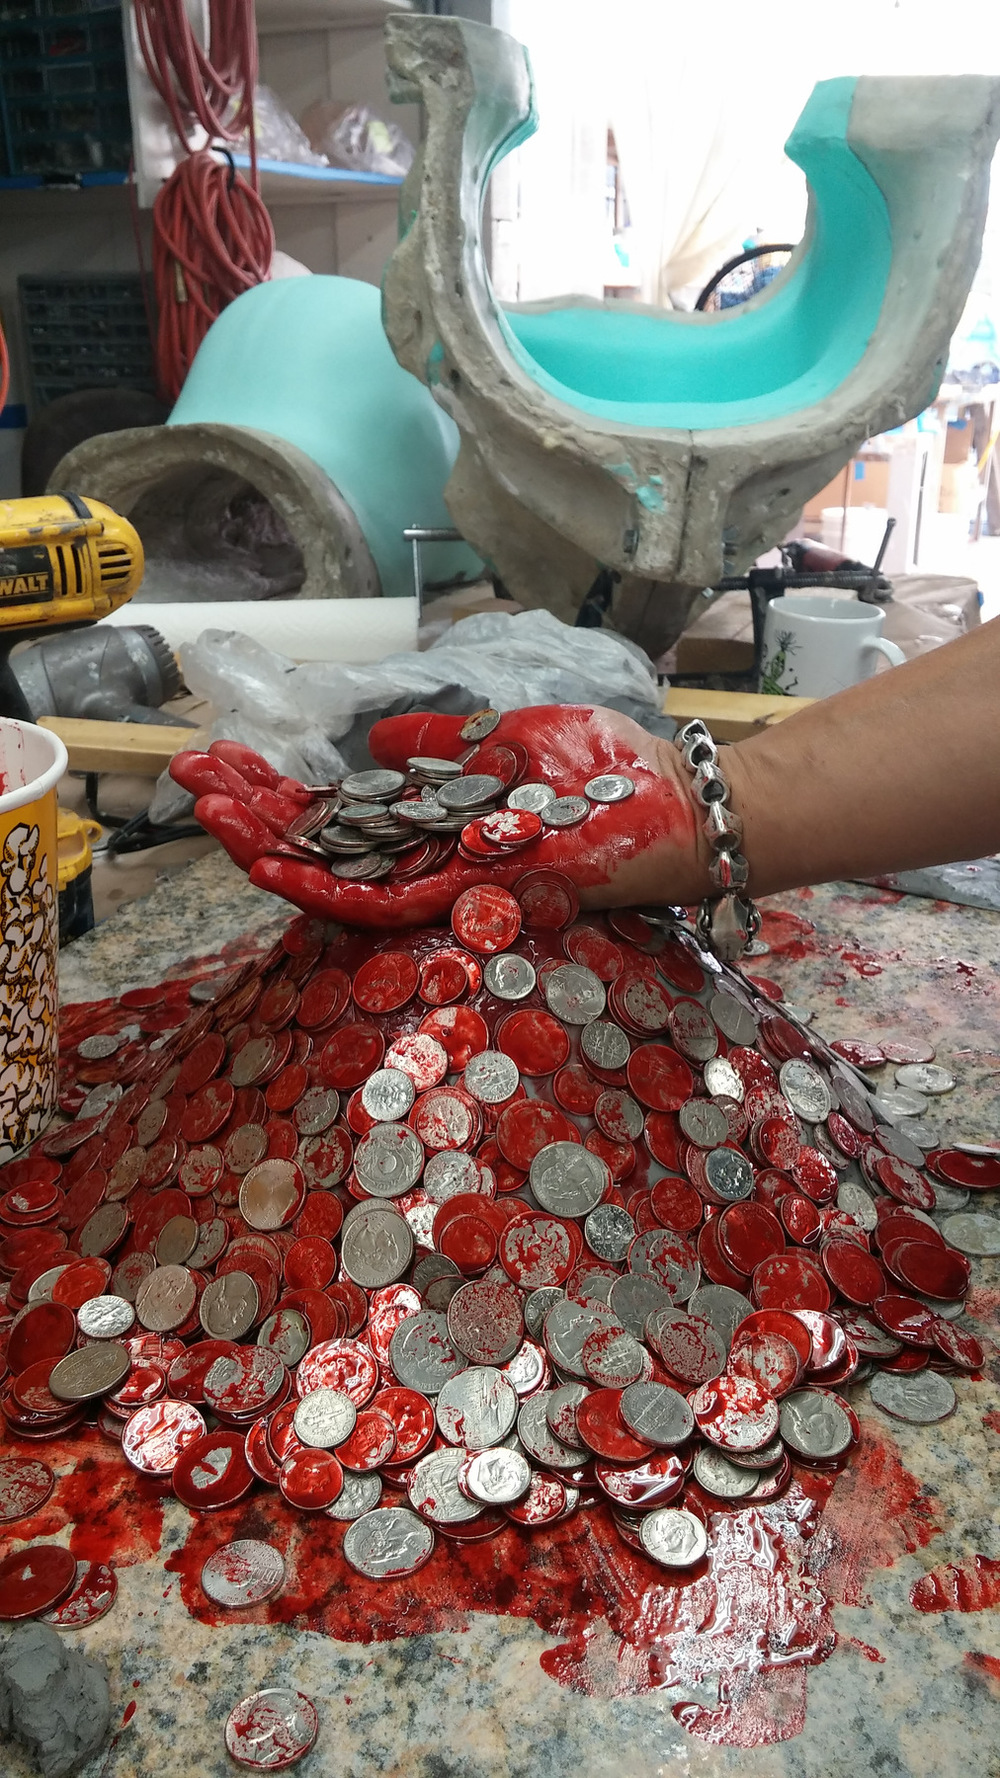 Atticus Anderson Portfolio - Molded and Cast Pile of Money gag for American Horror Story: Hotel